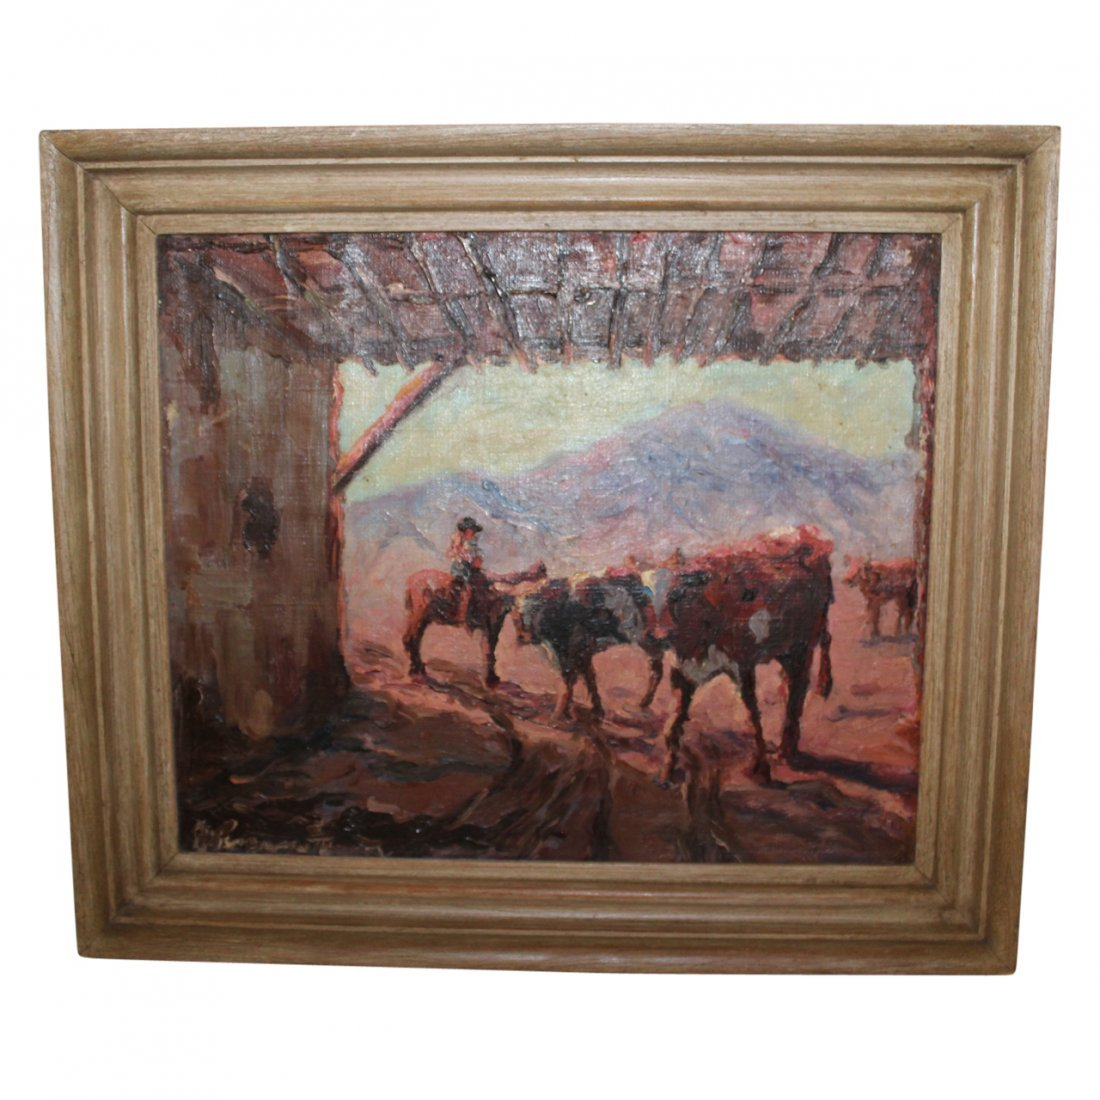 Painting of Cowboy with Cows Signed illegibly